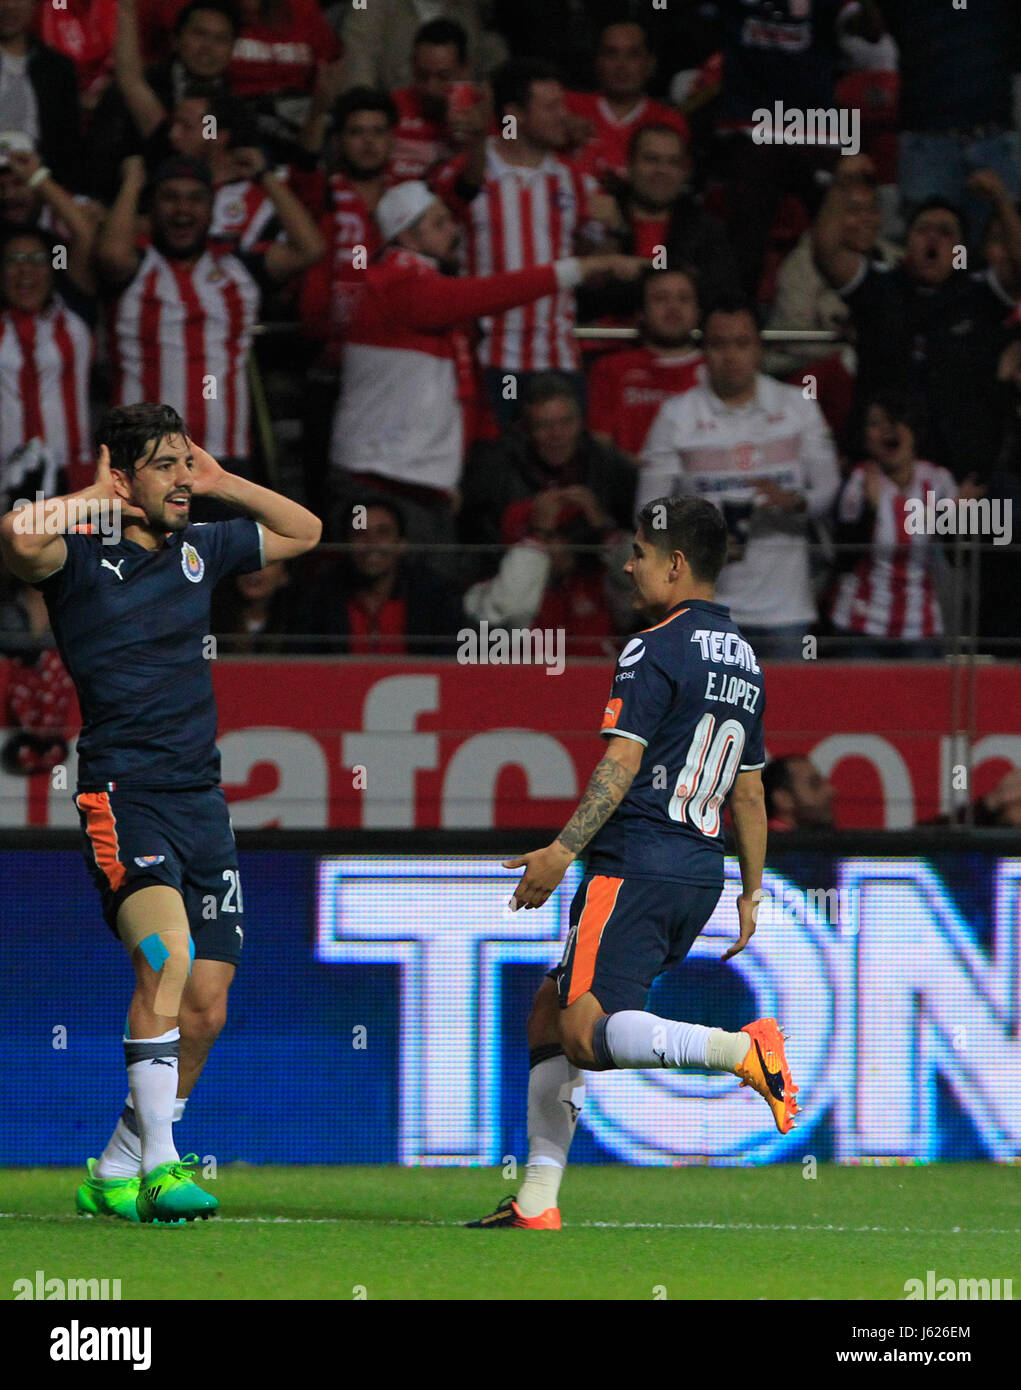 e6c3d405e95 Chivas de Guadalajara s Rodolfo Pizarro (L) and Eduardo Lopez celebrate a  goal against Toluca during their match for the semifinal of the Clausura ...